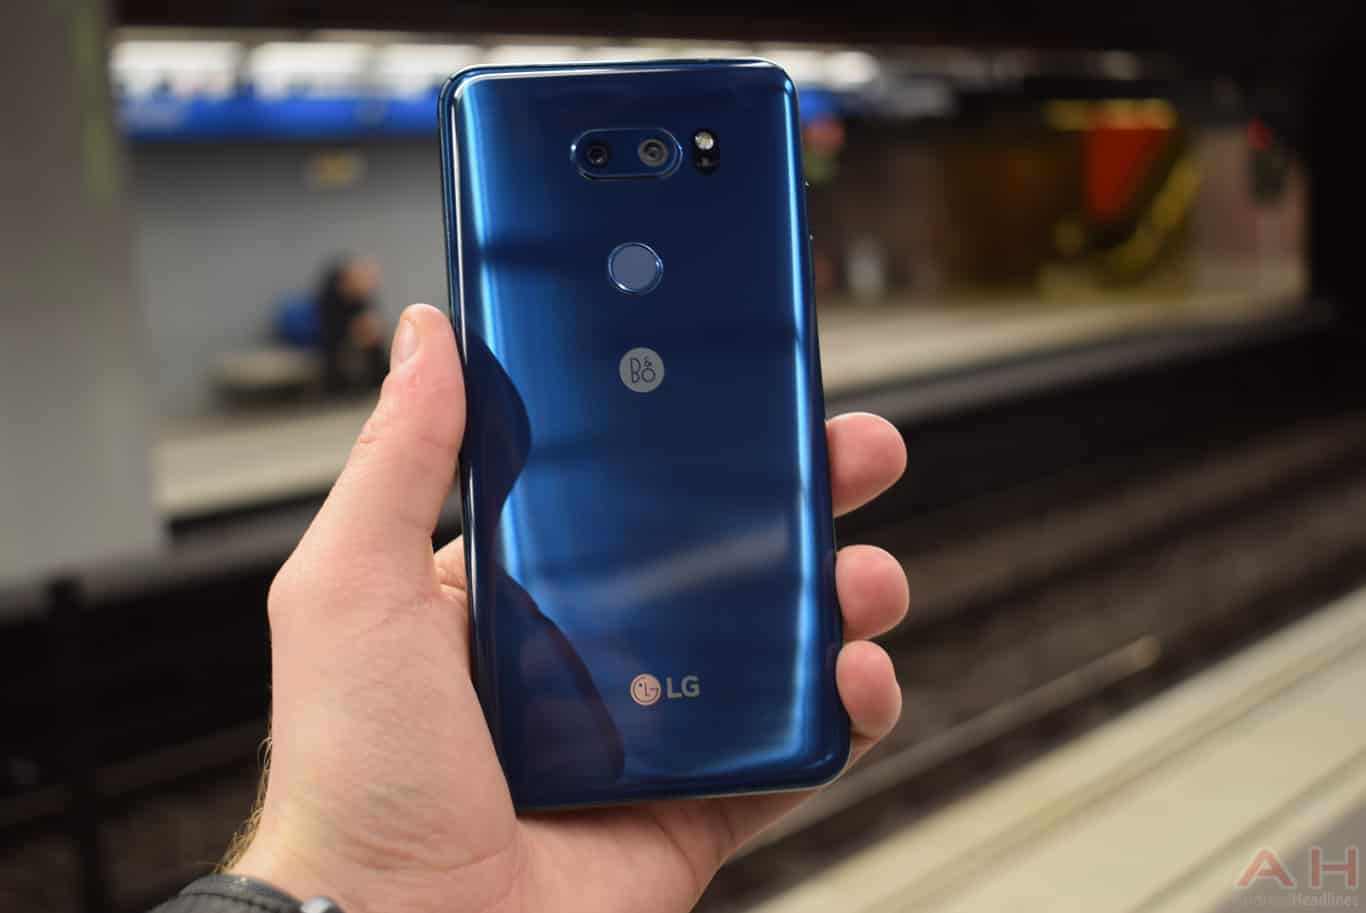 LG V30S ThinQ Launches With AI Features, More Storage & More RAM